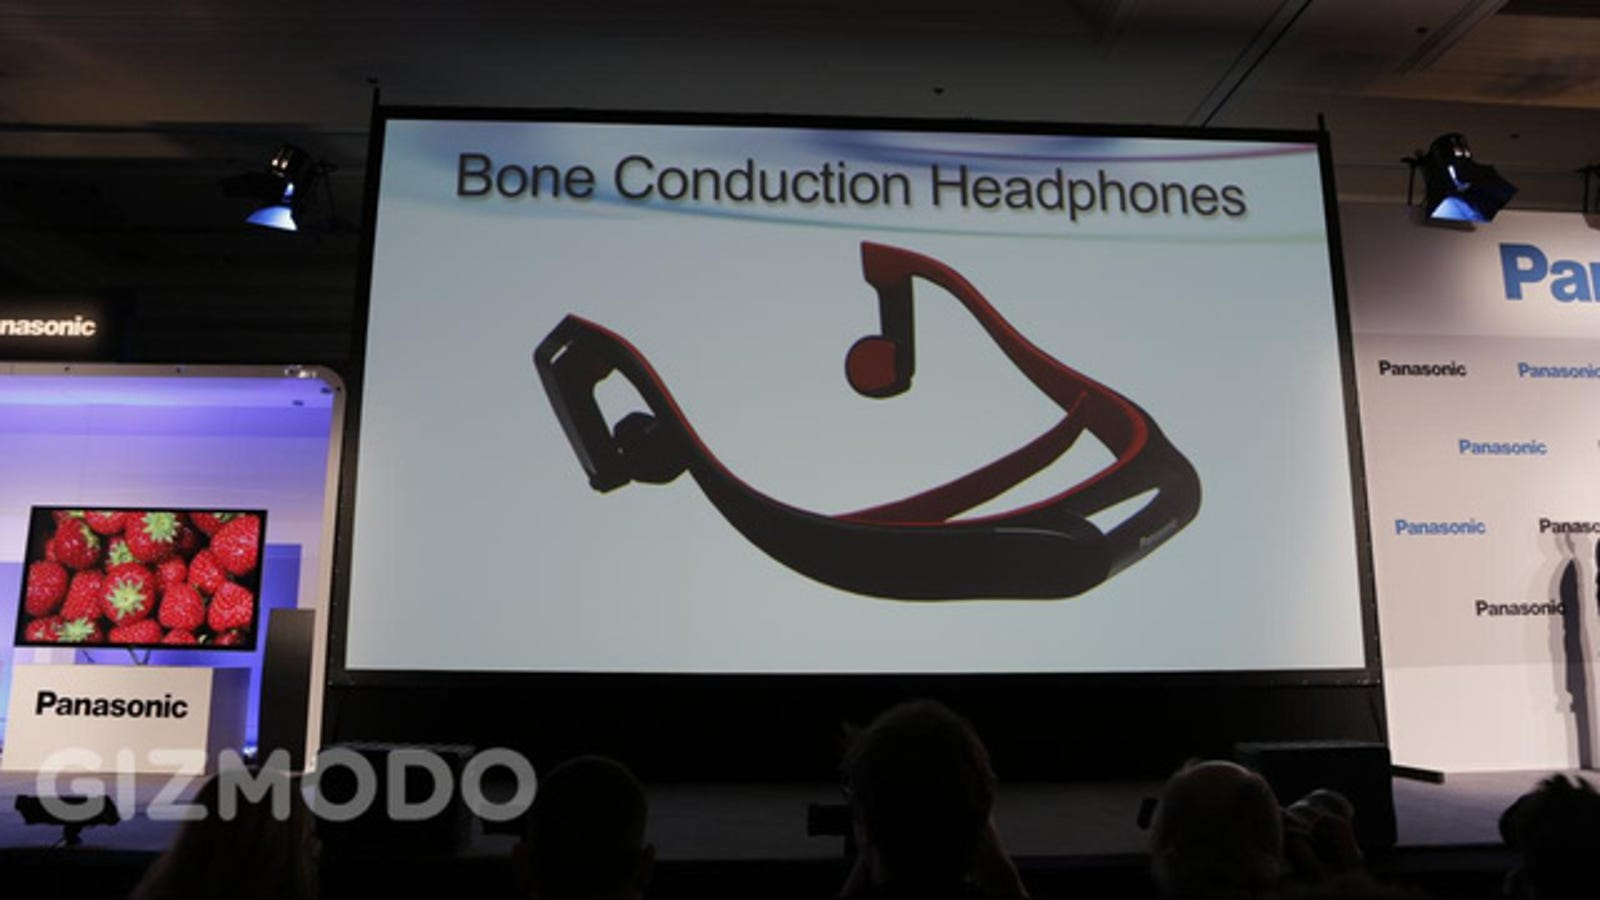 wireless headphones usb c charging - Panasonic's New Bone Conducting Headphones: WTH?